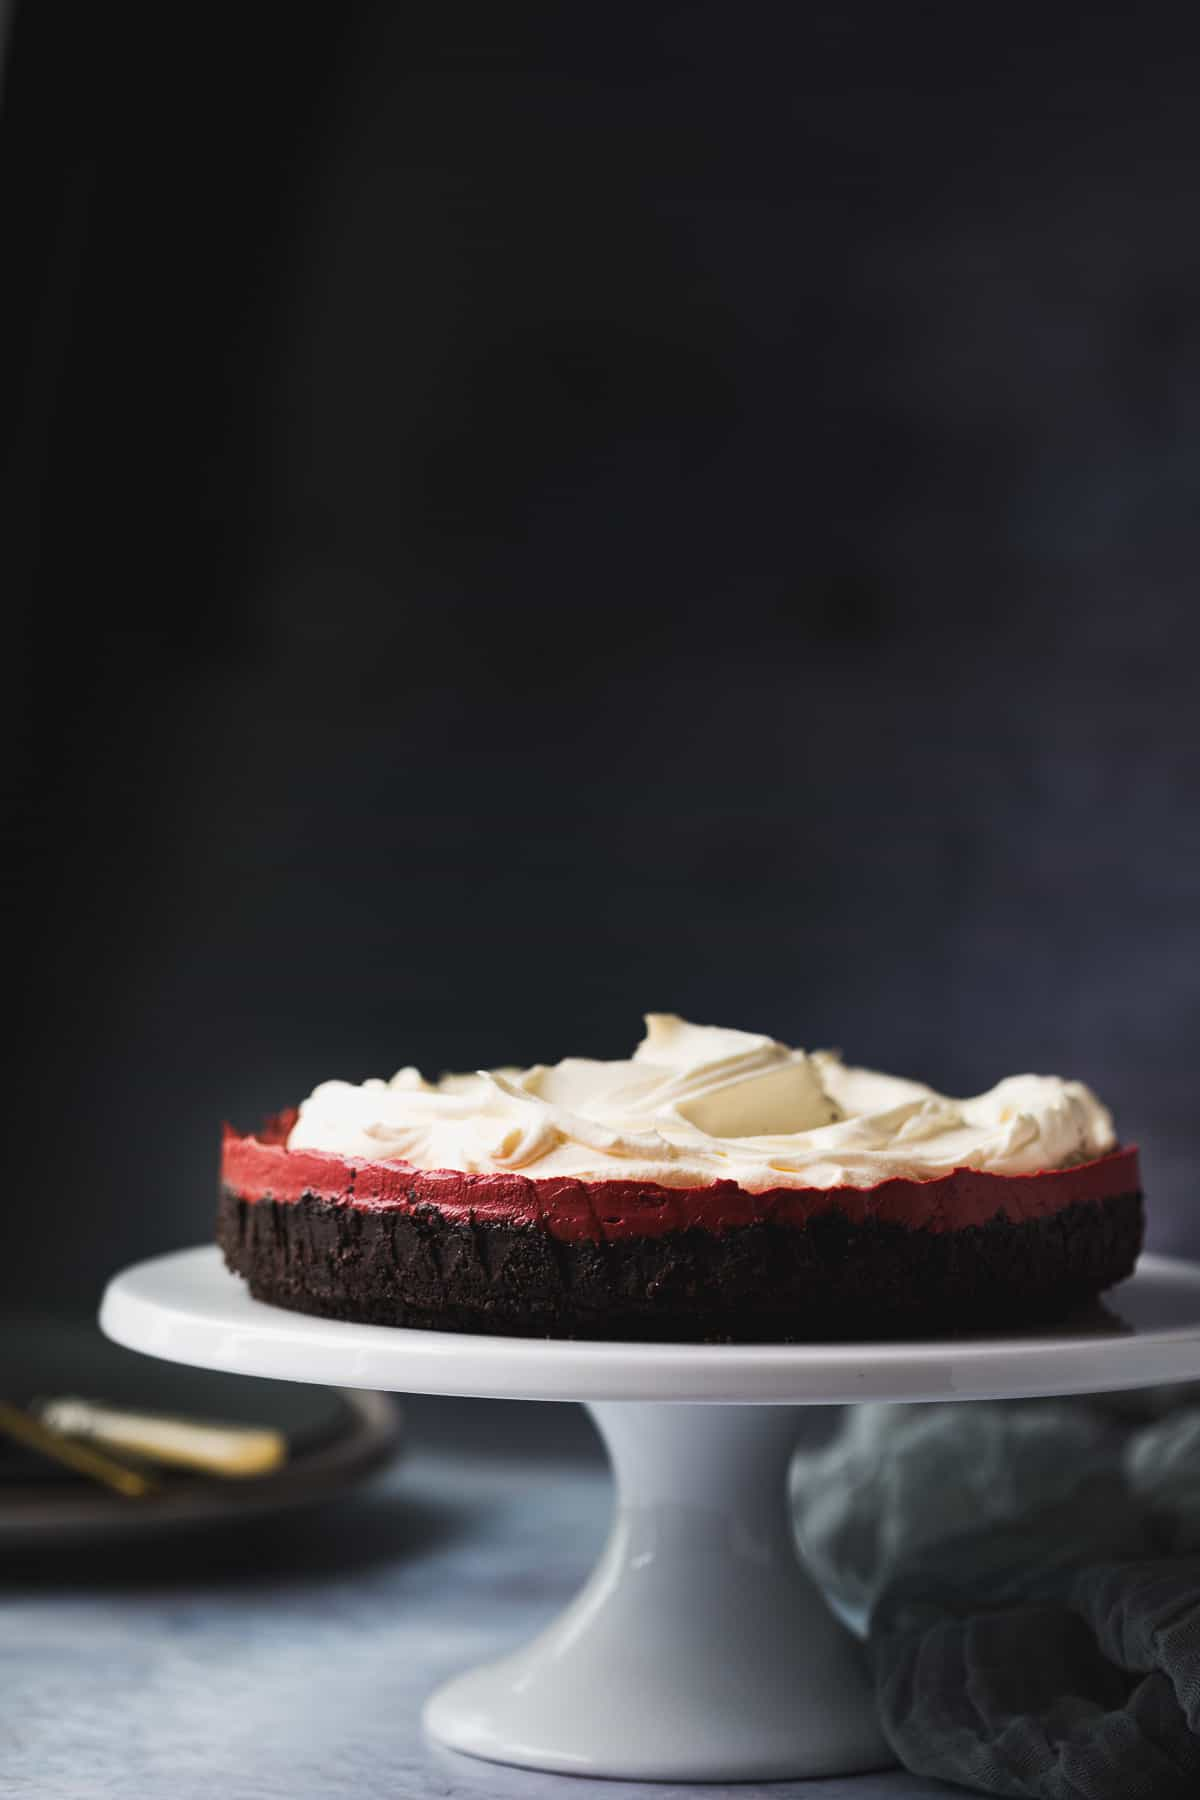 A red velvet cheesecake on a white cake stand.